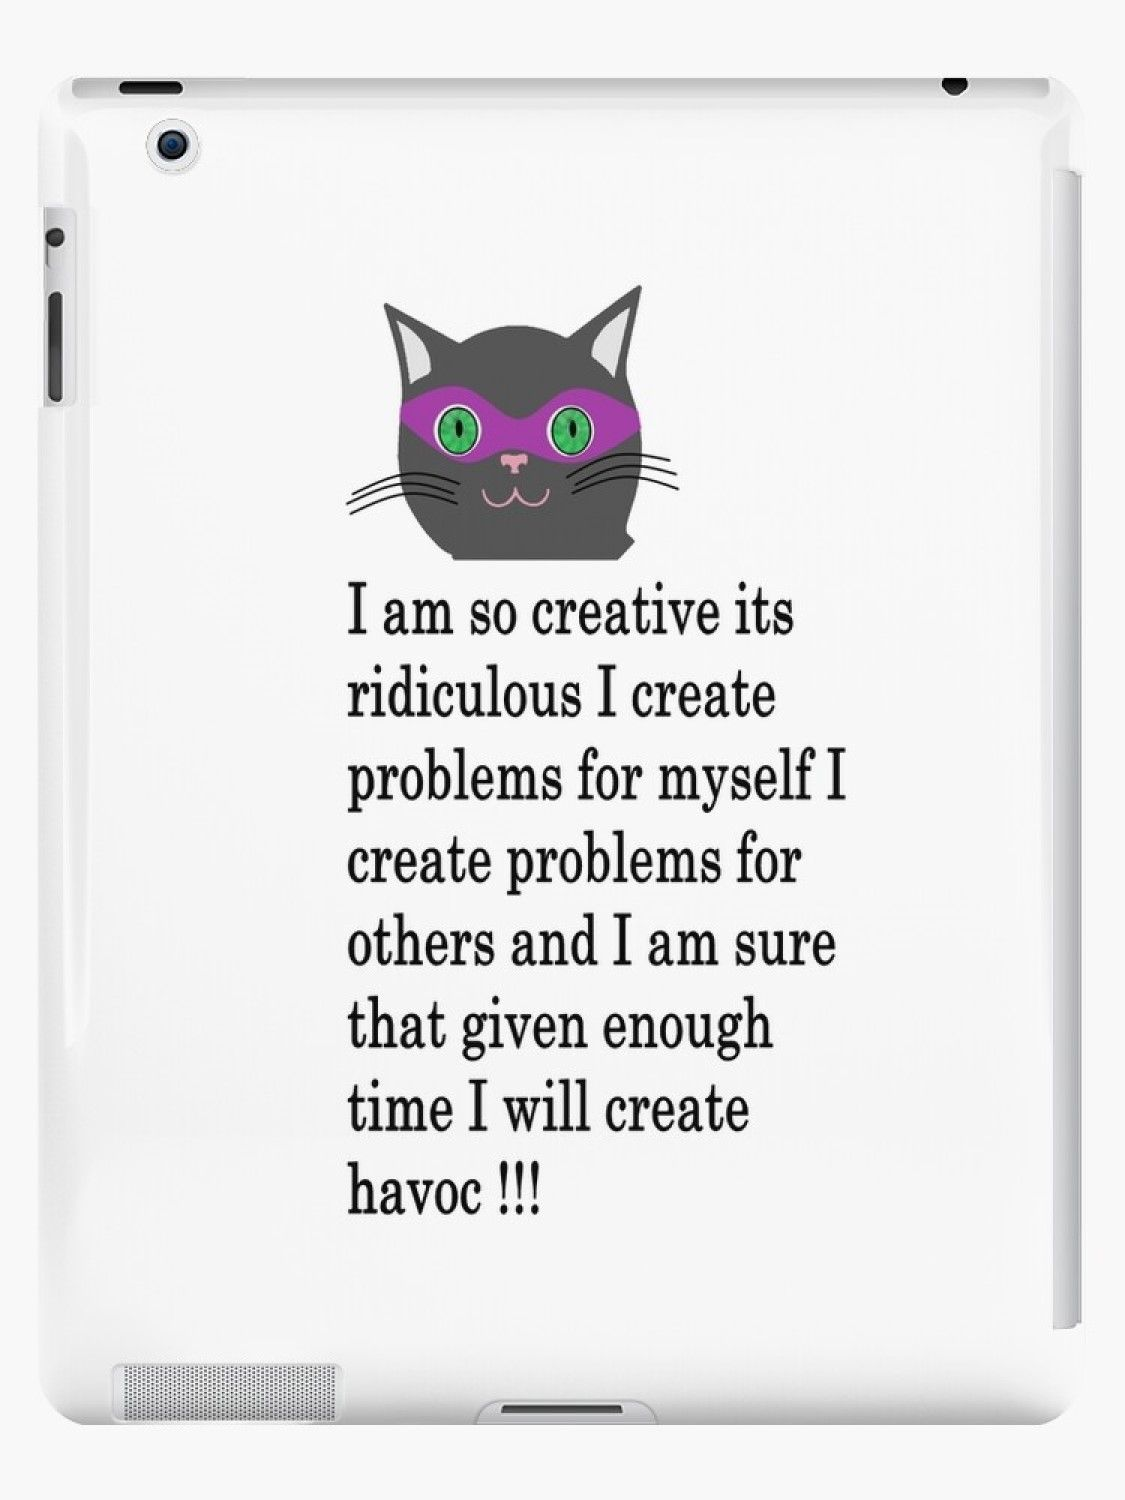 Ipad Case Cat Funny Quotes Humor Hilarious Memes Cute Kittens Sarcastic 3 Cat Quotes Funny Funny Cats Cute Kittens Images